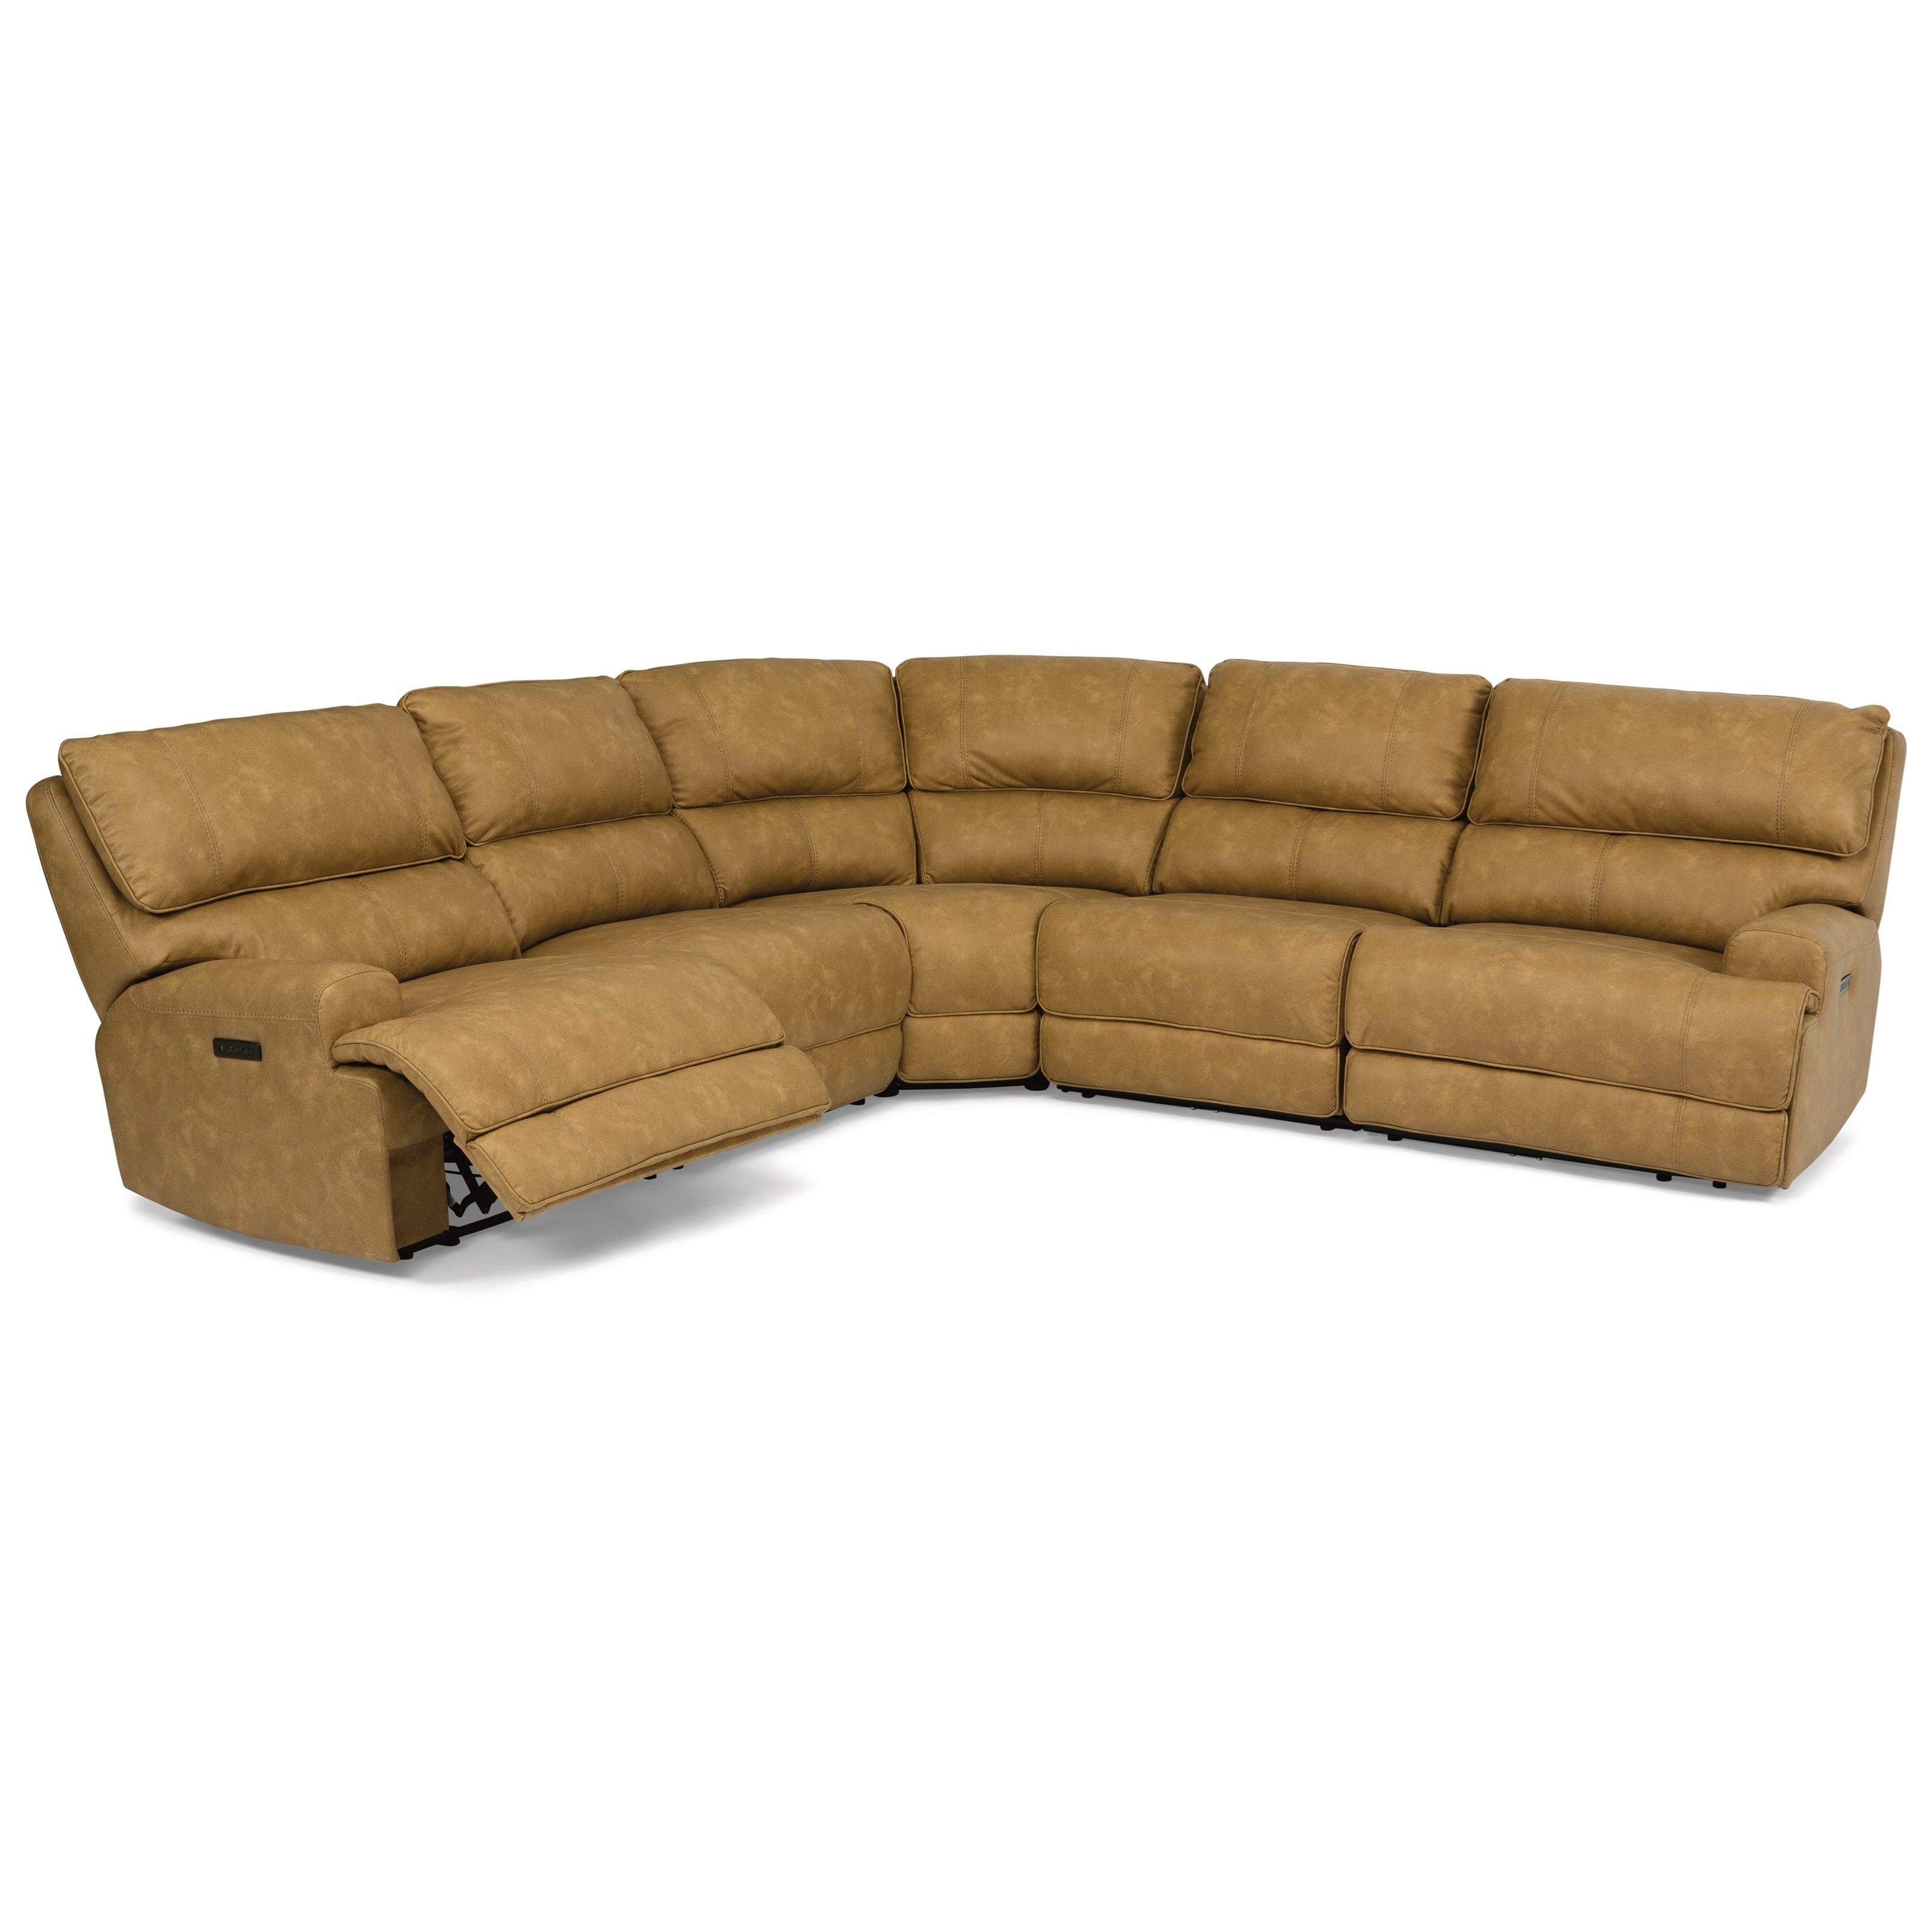 Latitudes - Floyd 5-Piece Power Sectional by Flexsteel at Walker's Furniture